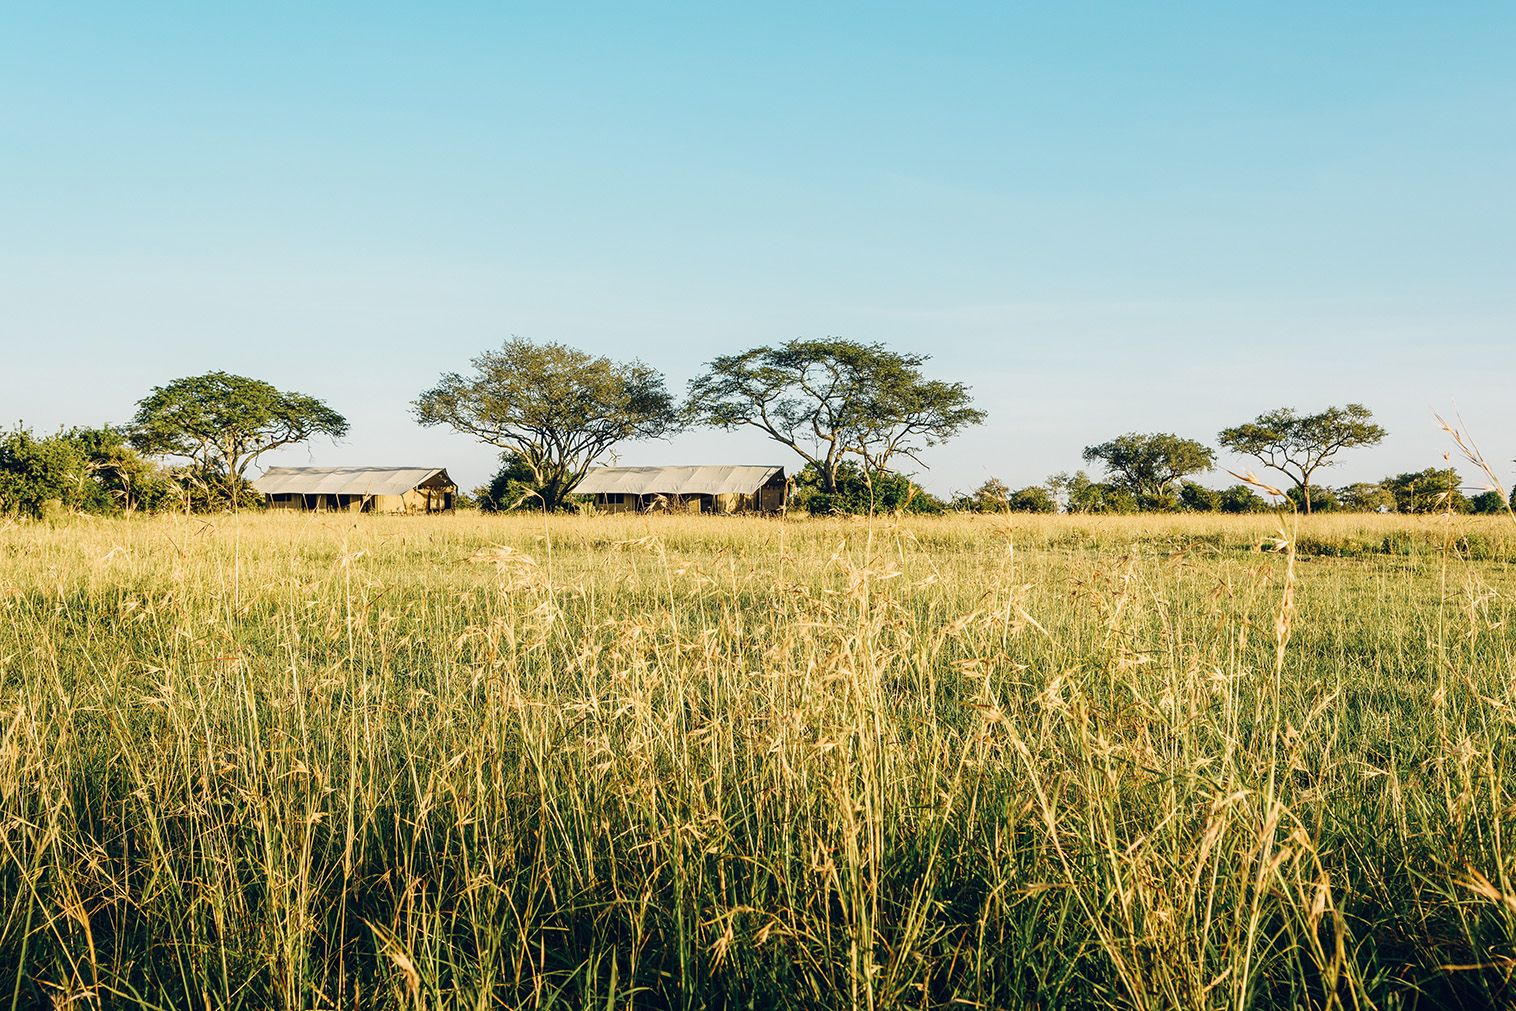 Zuma beach wedding venues  This Luxury Safari Brand is Leading The Way in EcoTourism  Tourism